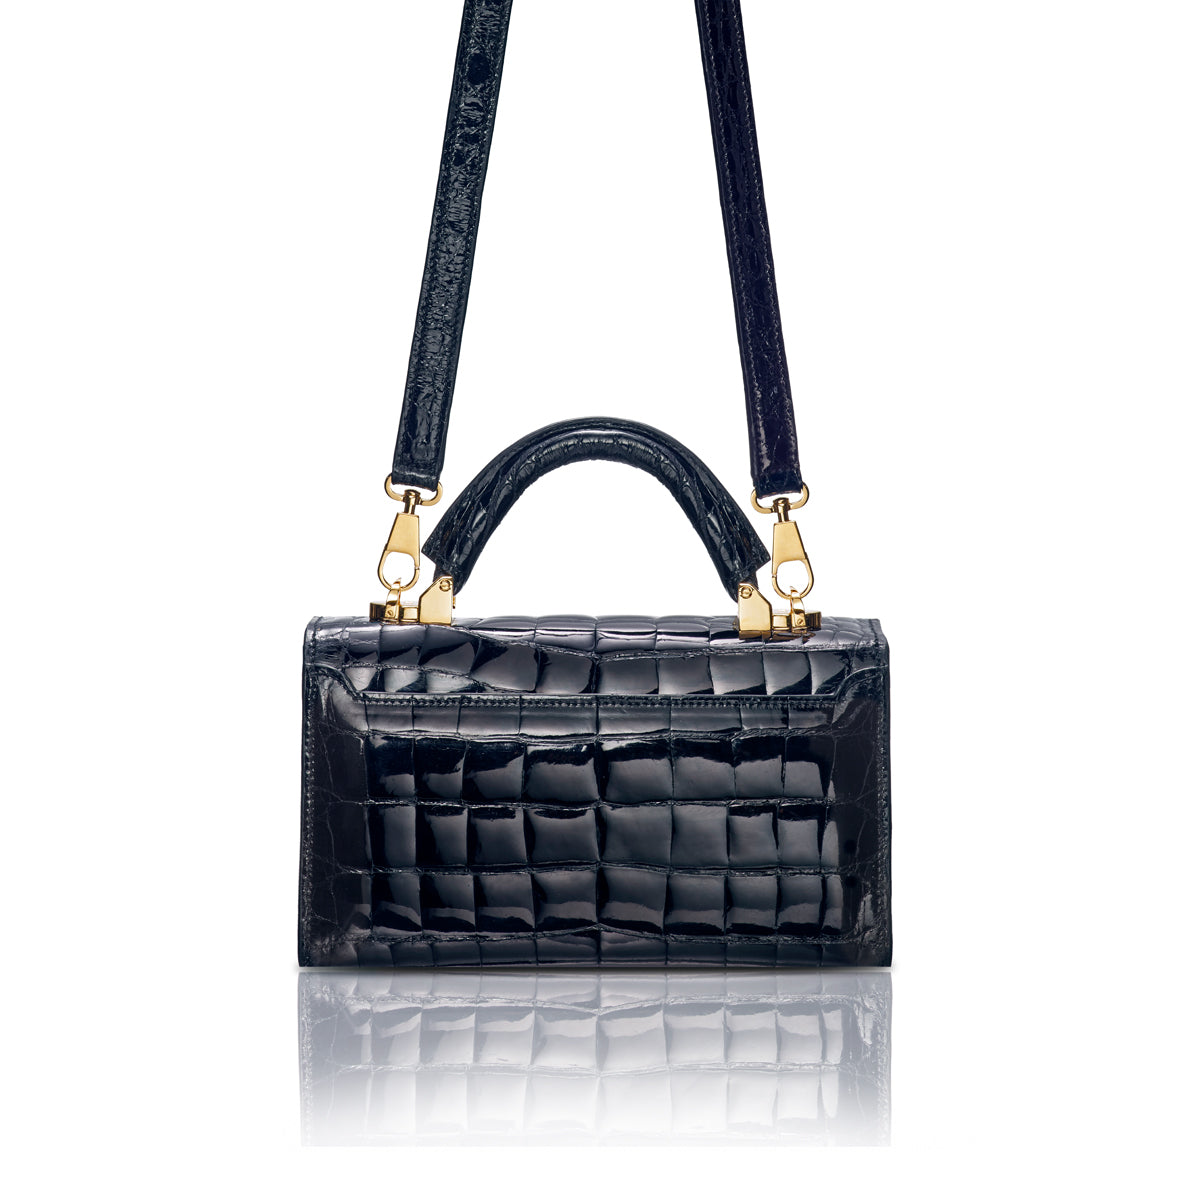 Top Handle 2.0 Mini - Black Alligator